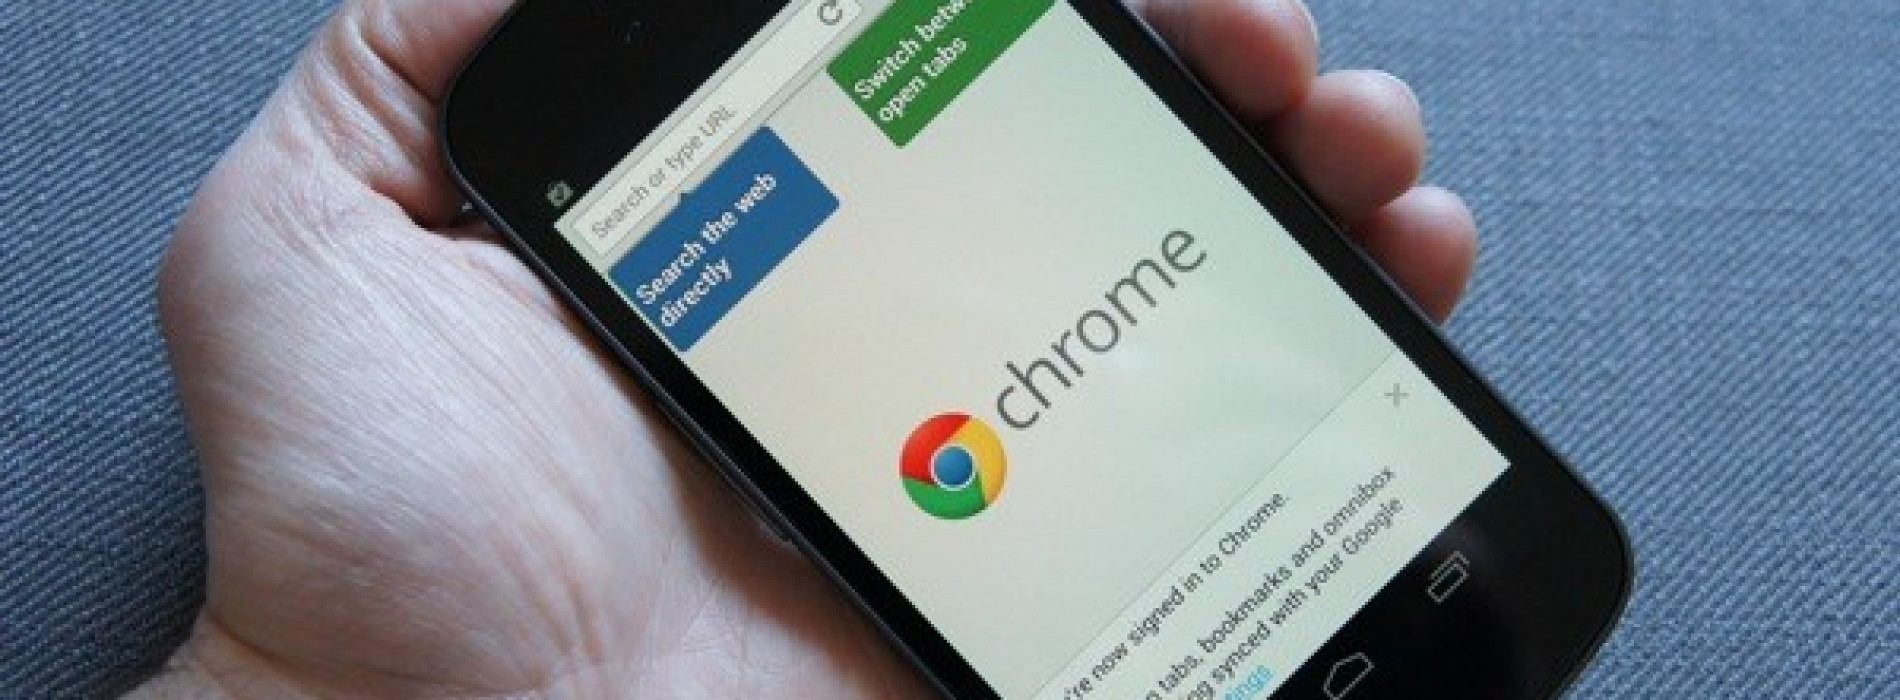 Google Chrome to align versions across all platforms by early 2013